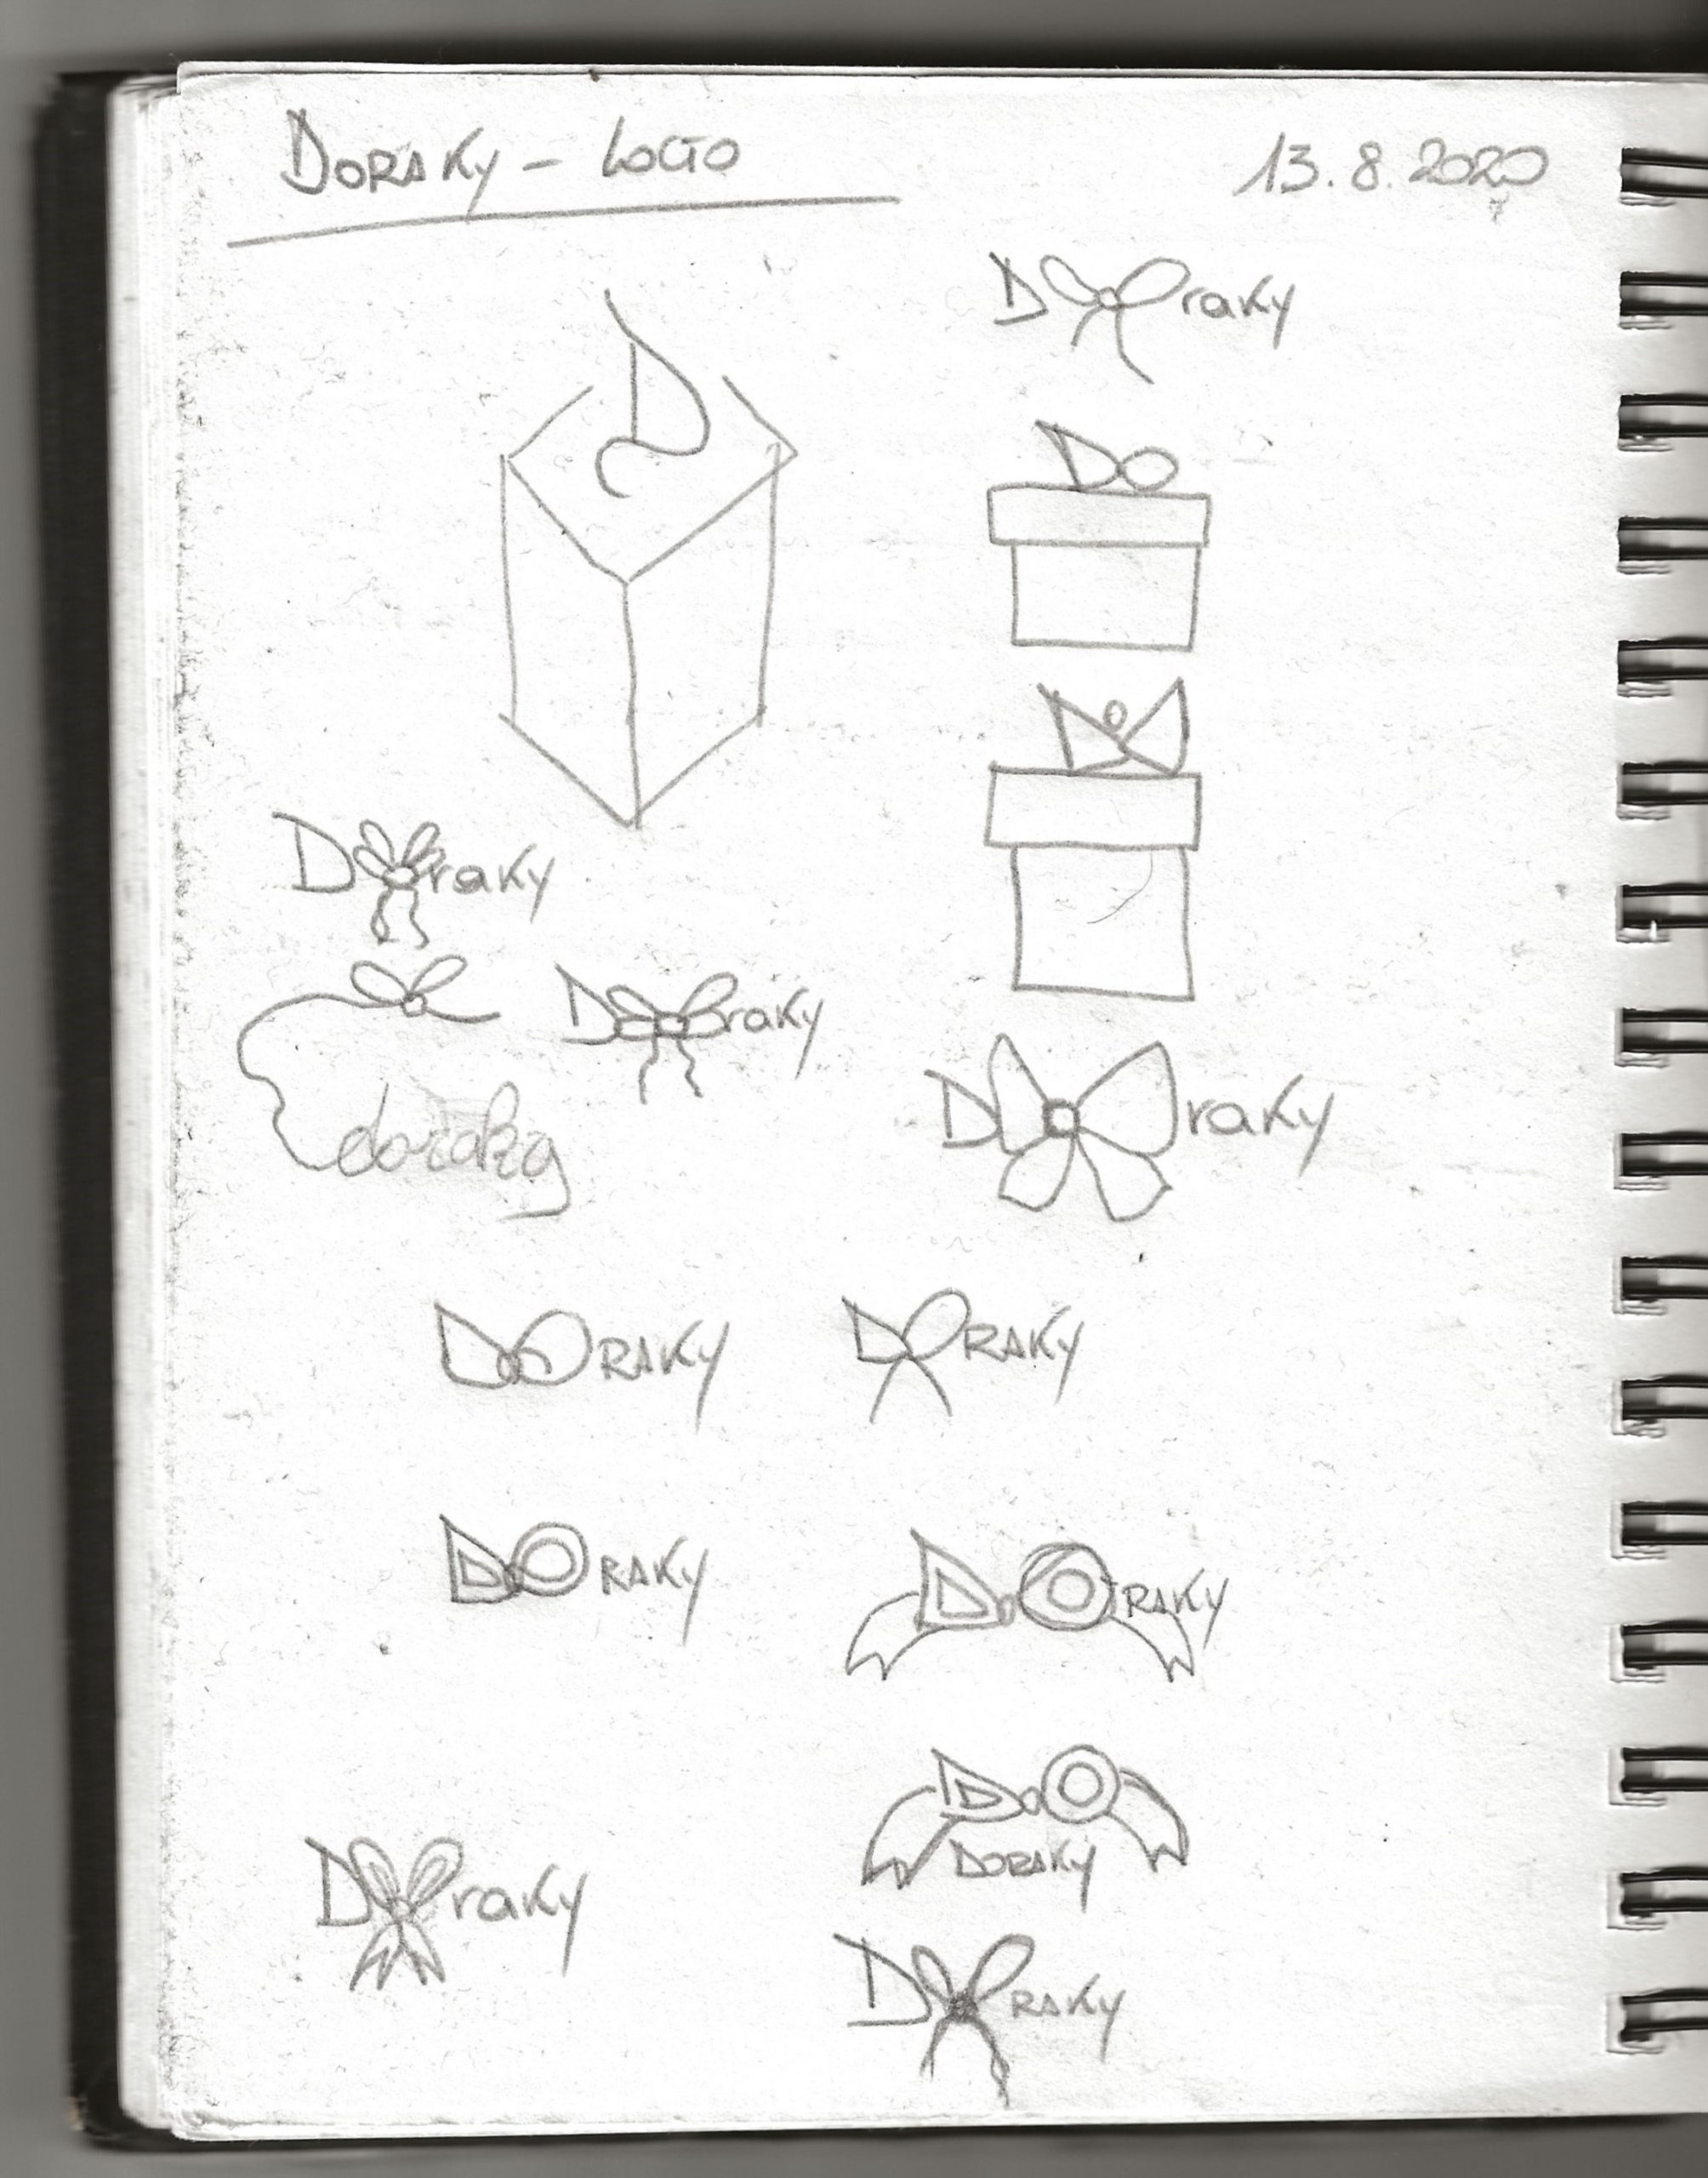 doraky_logo_sketches